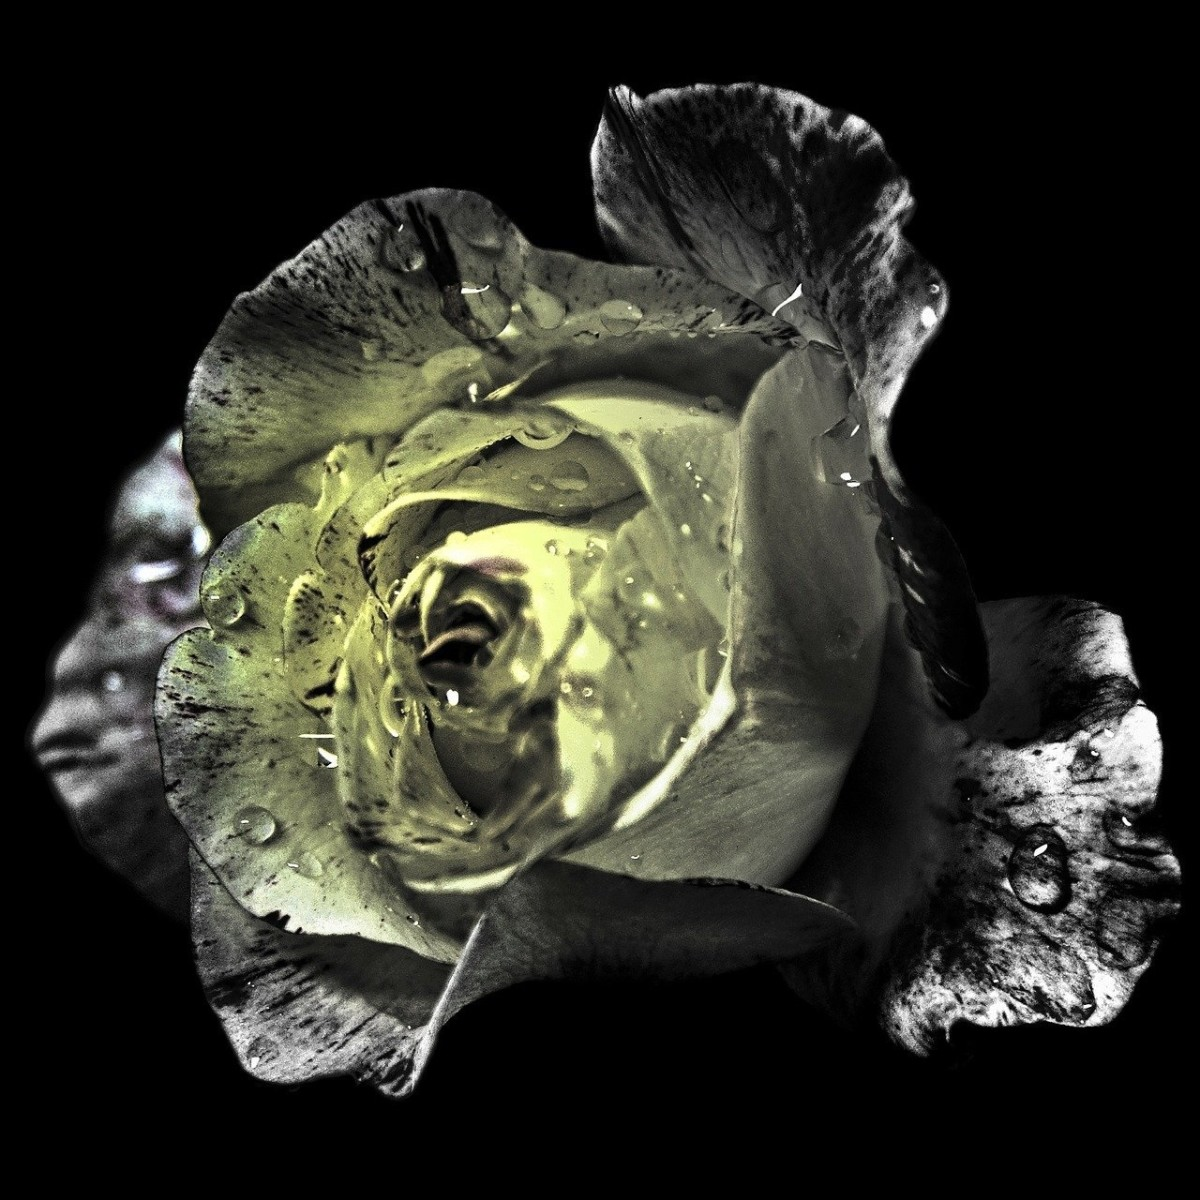 Personal development is like the opening of a rose; one petal at a time unfolds.